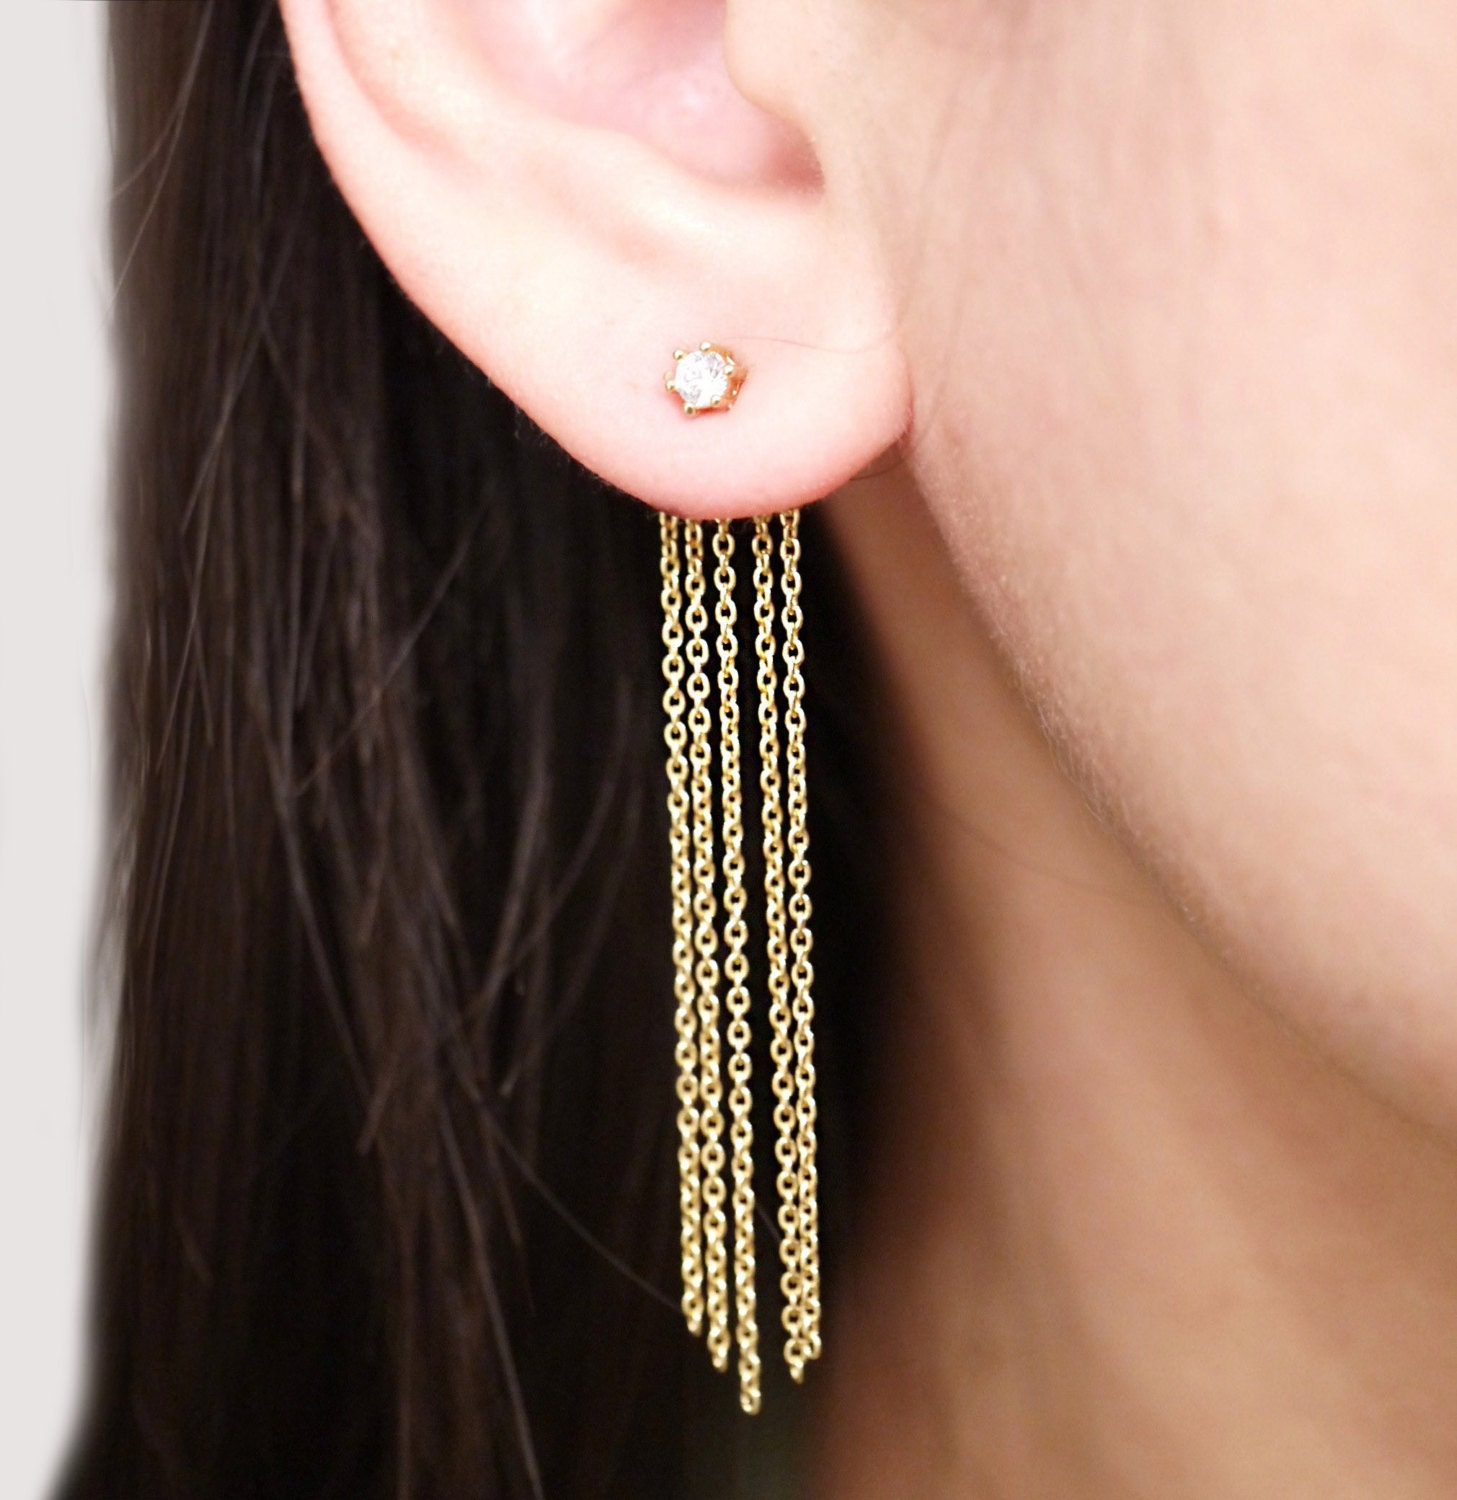 Find a great selection of women's earrings at celebtubesnews.ml Shop for stud, hoop, clip-on and more. Totally free shipping and returns.